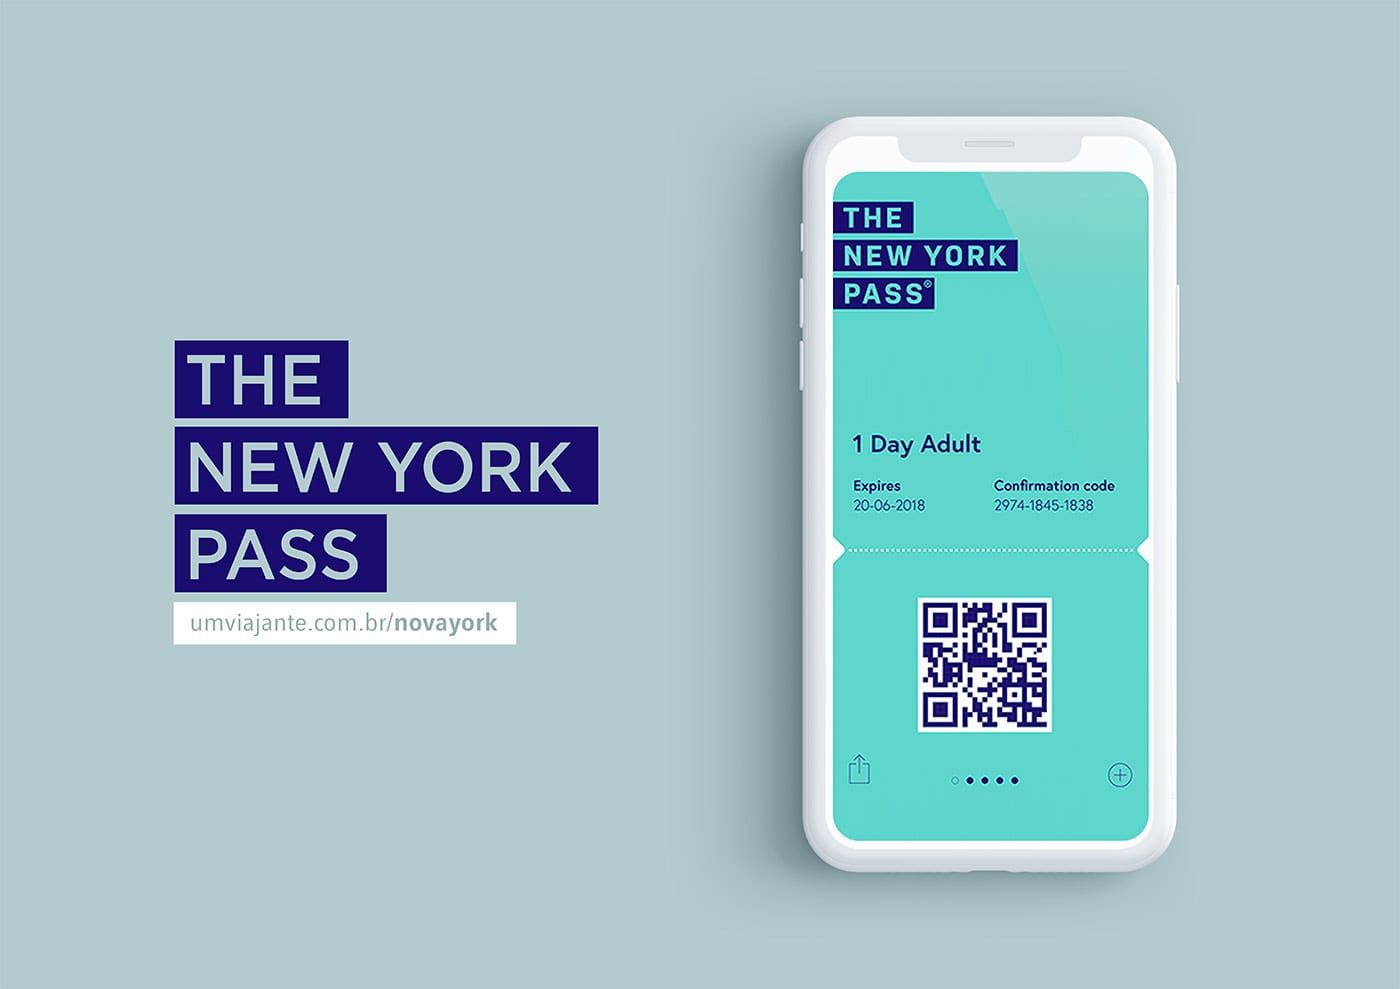 The New York Pass - Vale a pena?